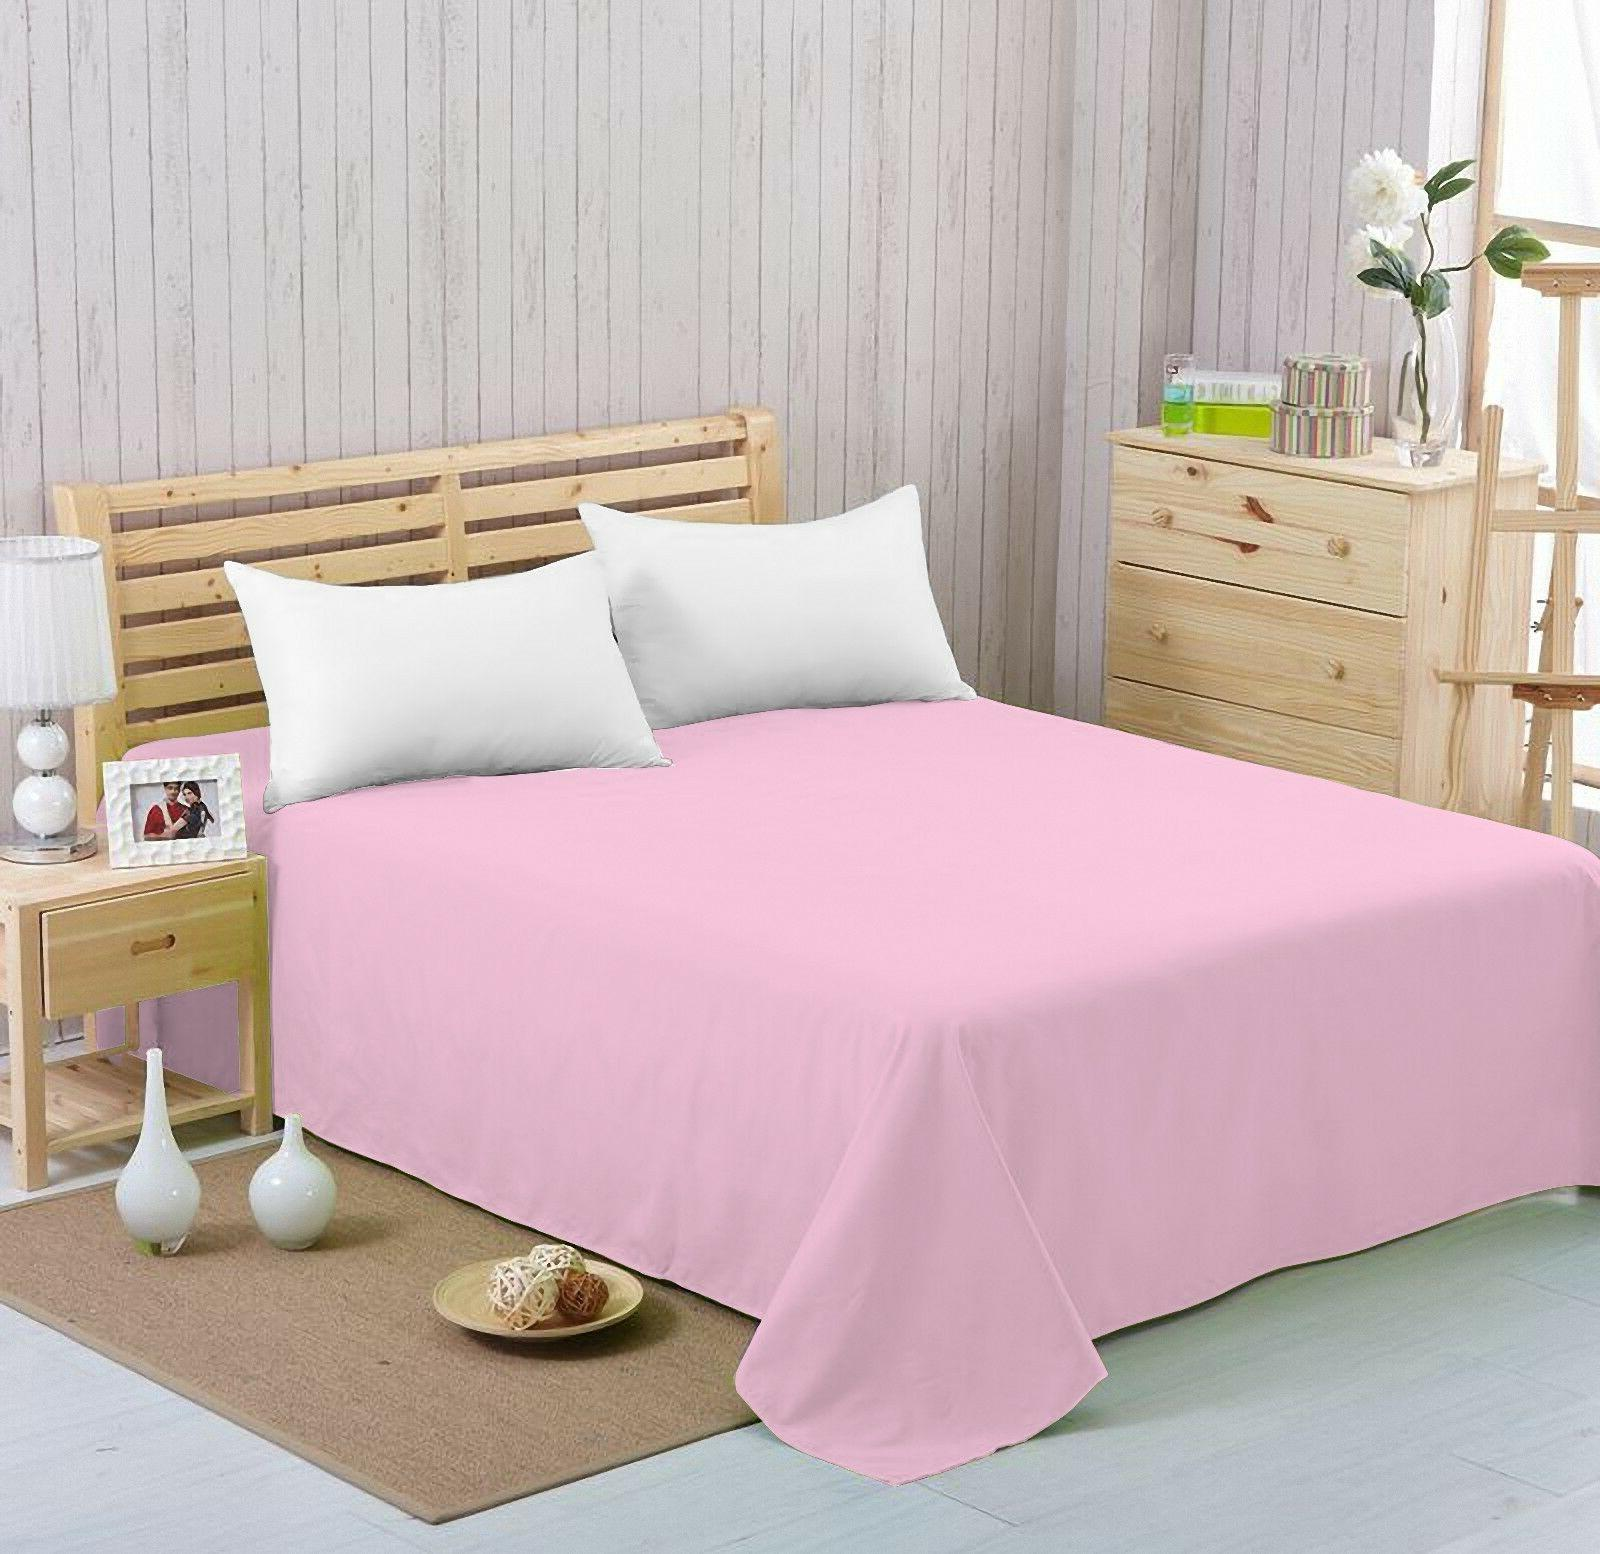 Flat Soft,Breathable& Comfortable Microfiber Quality,